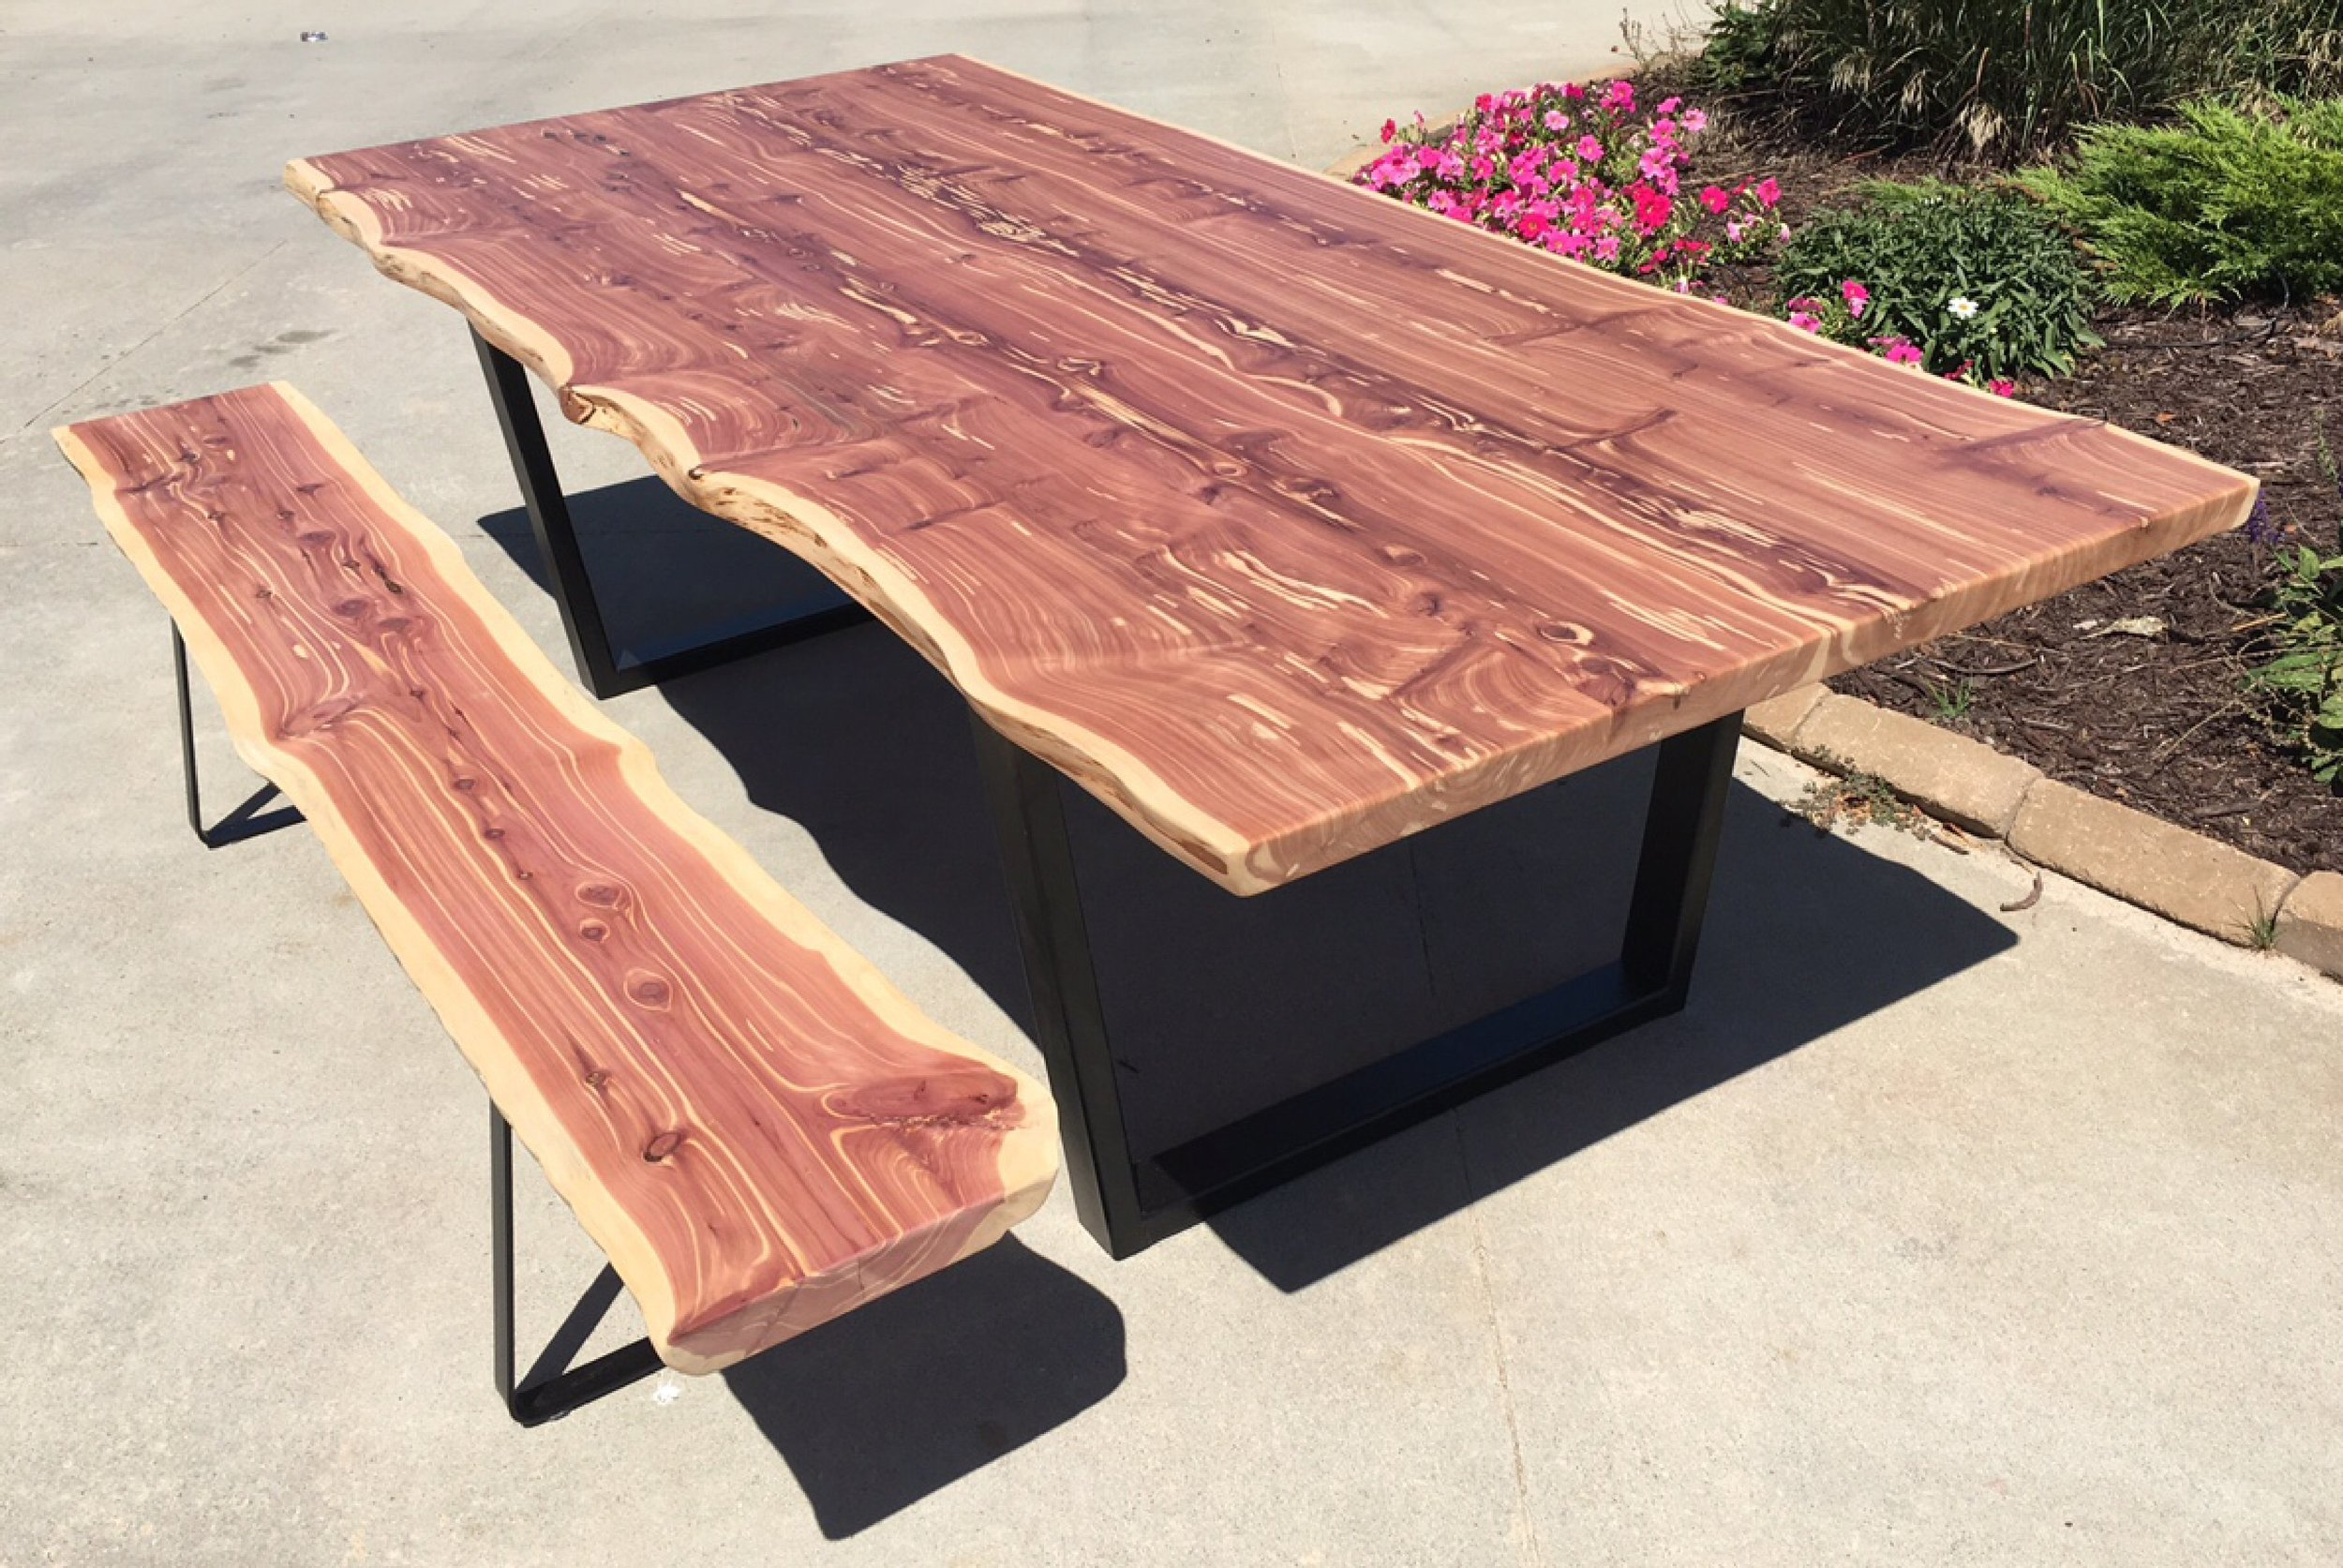 """Red Cedar Live Edge Dining Room Table with Bench 42"""" W X 96"""" L X 28"""" T.  This 2"""" thick table is supported by 2"""" X 3"""" rectangular steel tapered...$3,200.00  SOLD"""